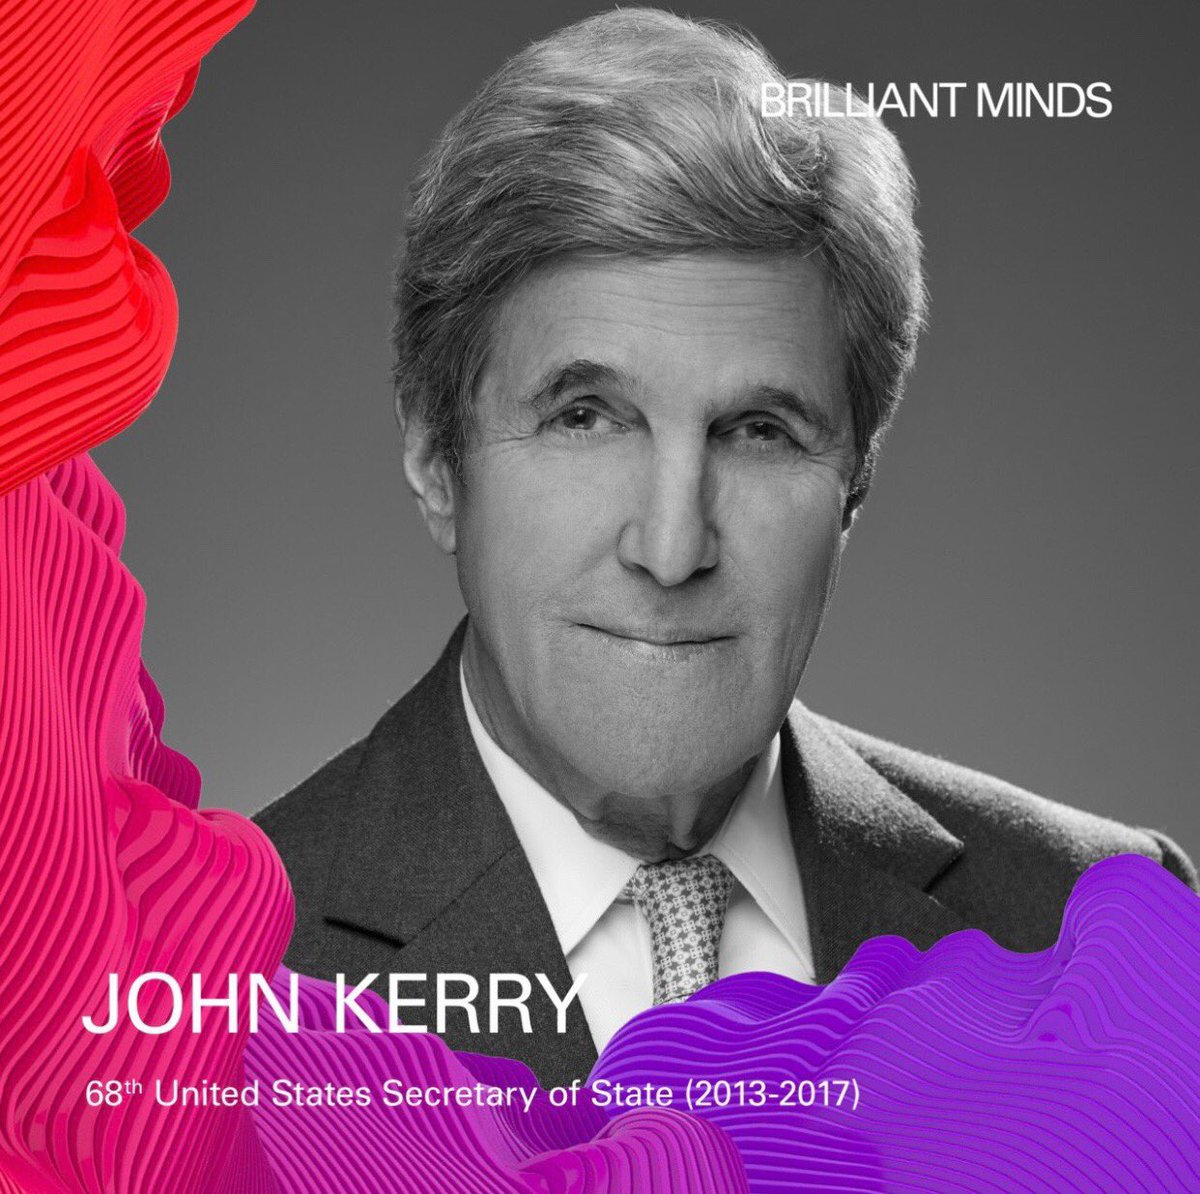 Amazing speaker list @natalbrzezinski #Brilliantminds John Kerry will be great! Check out more speakers: https://t.co/23GhTqYY69 GREAT JOB Natalia, we're proud of you